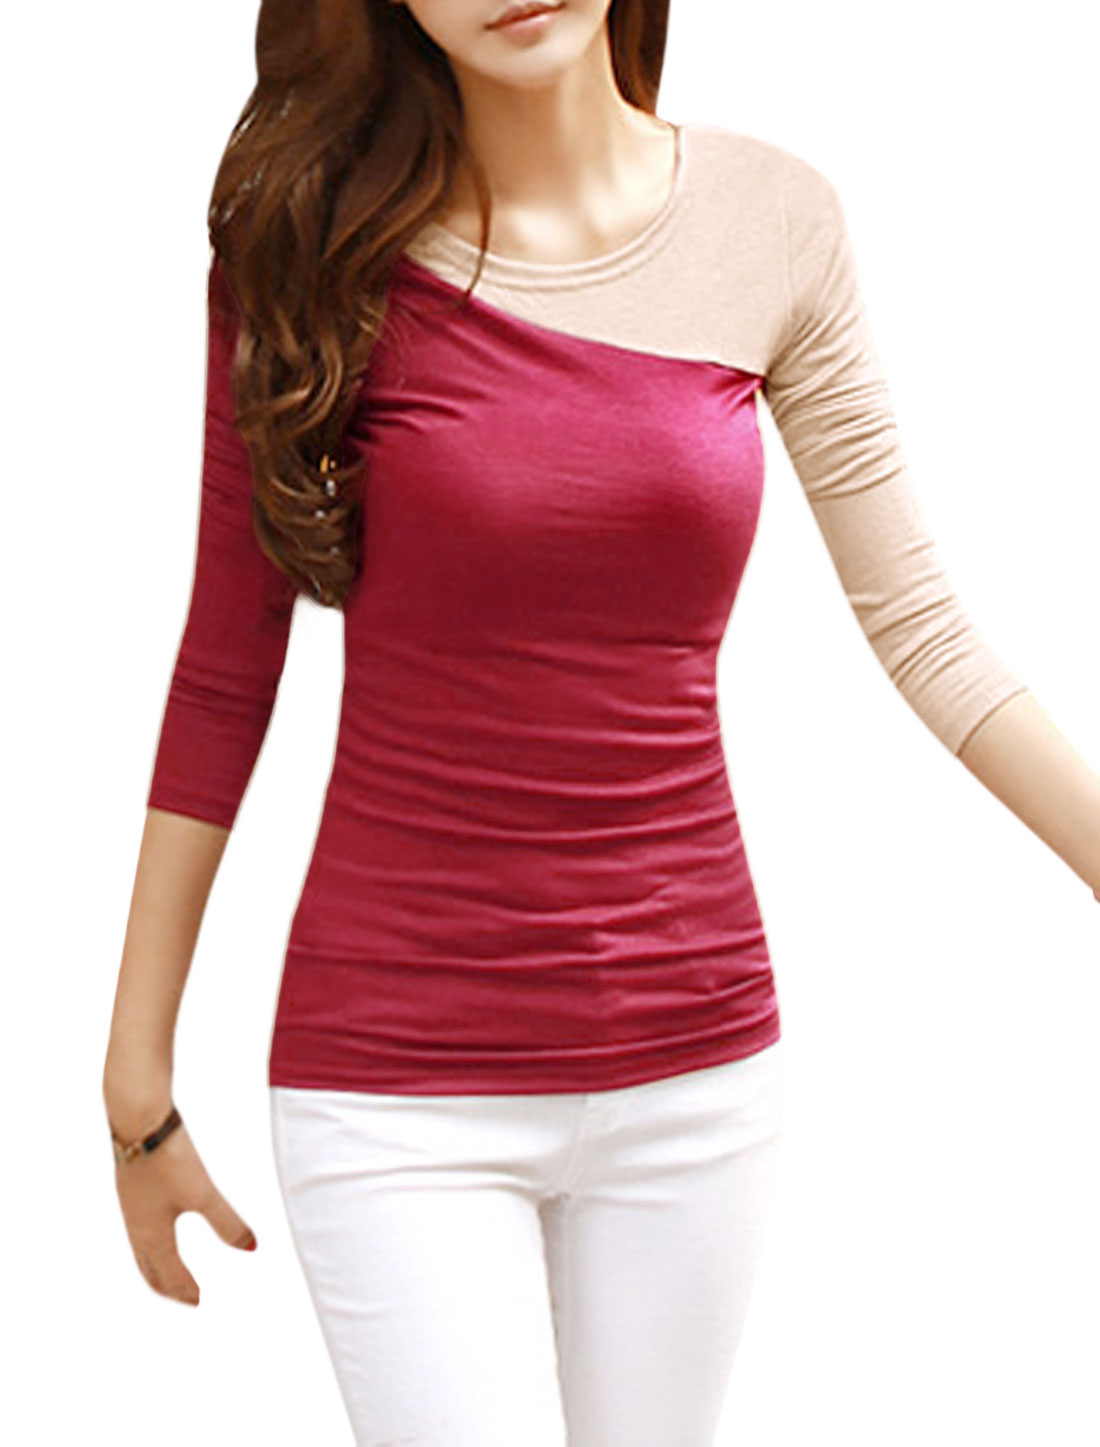 Ladies Long Sleeves Color Block Slim Fit Tee Shirt Red XS